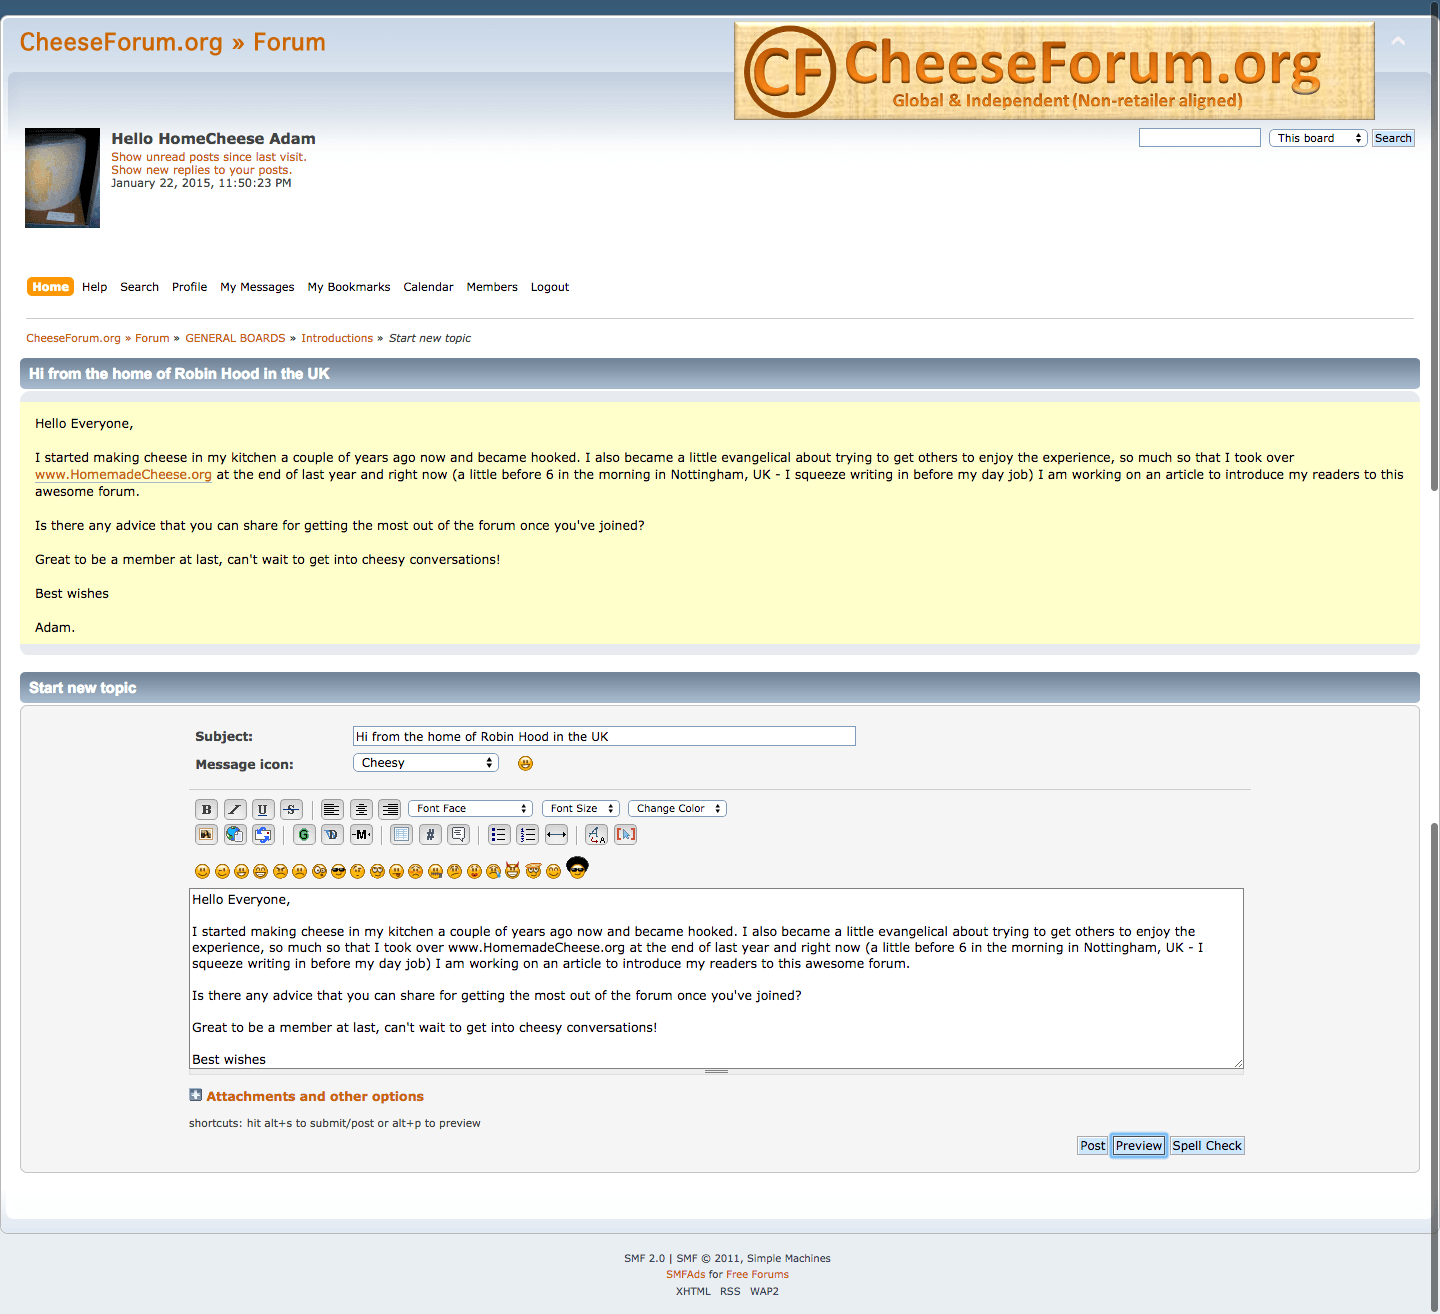 How to write a post on the cheese forum